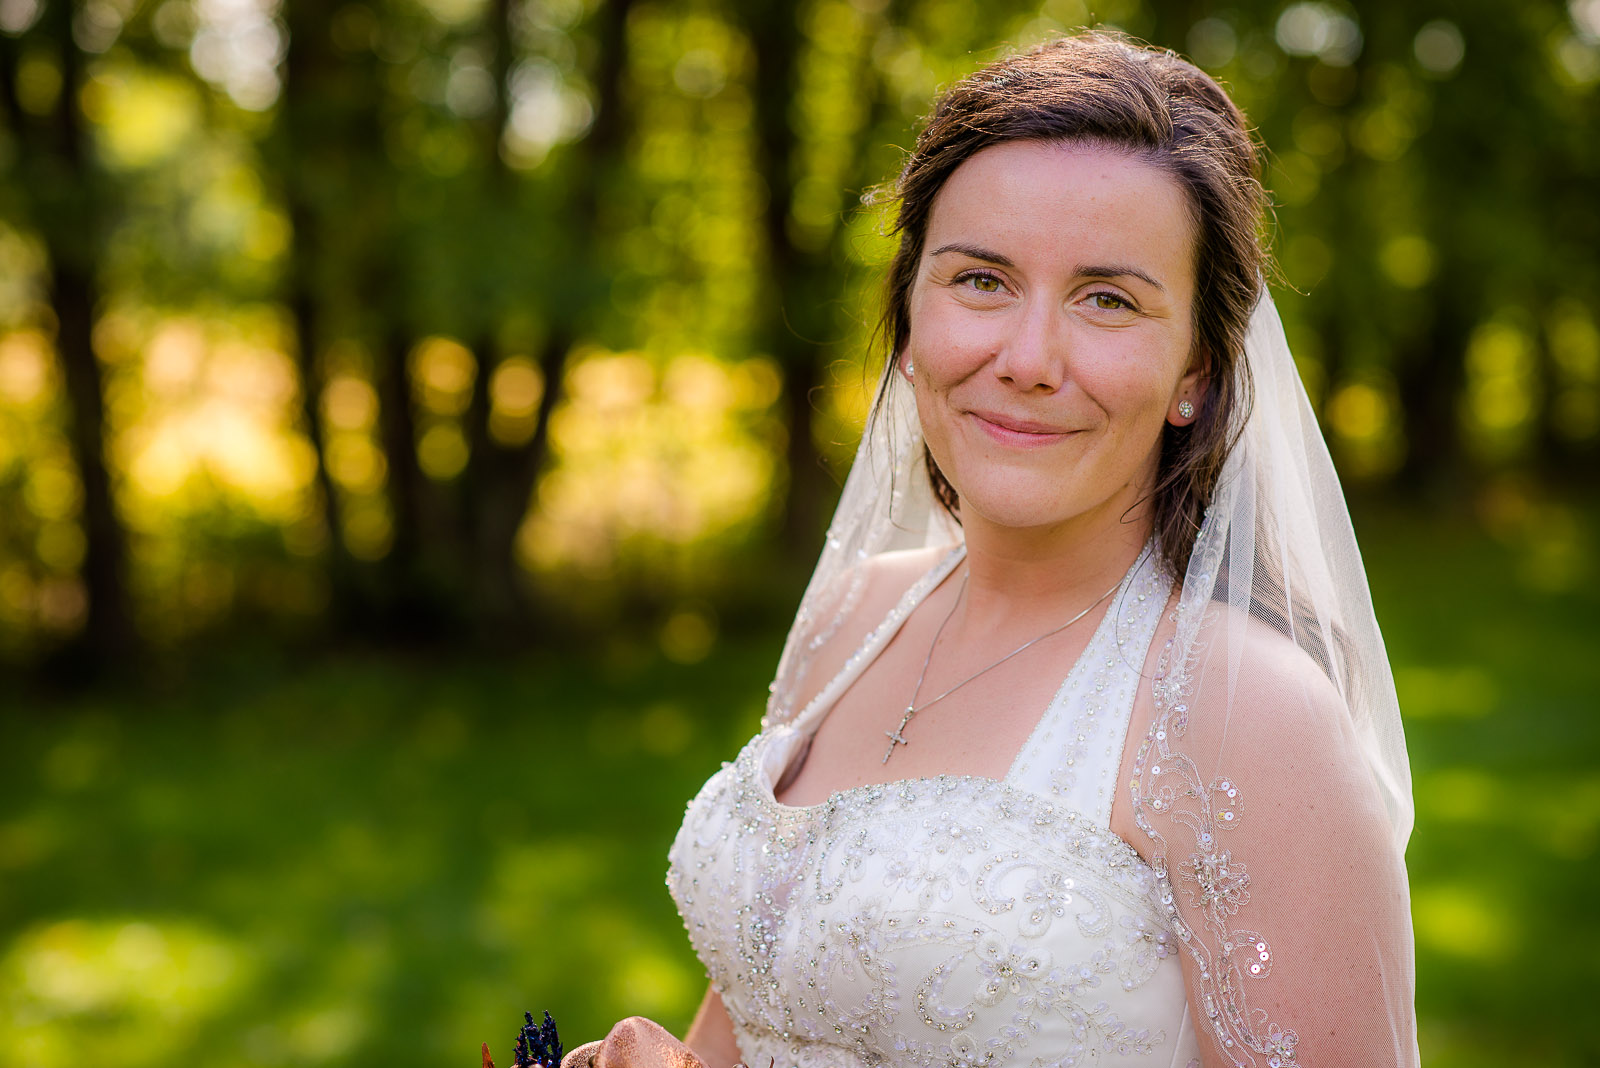 Eric_and_Christy_Photography_Blog_2018_Portraits-24